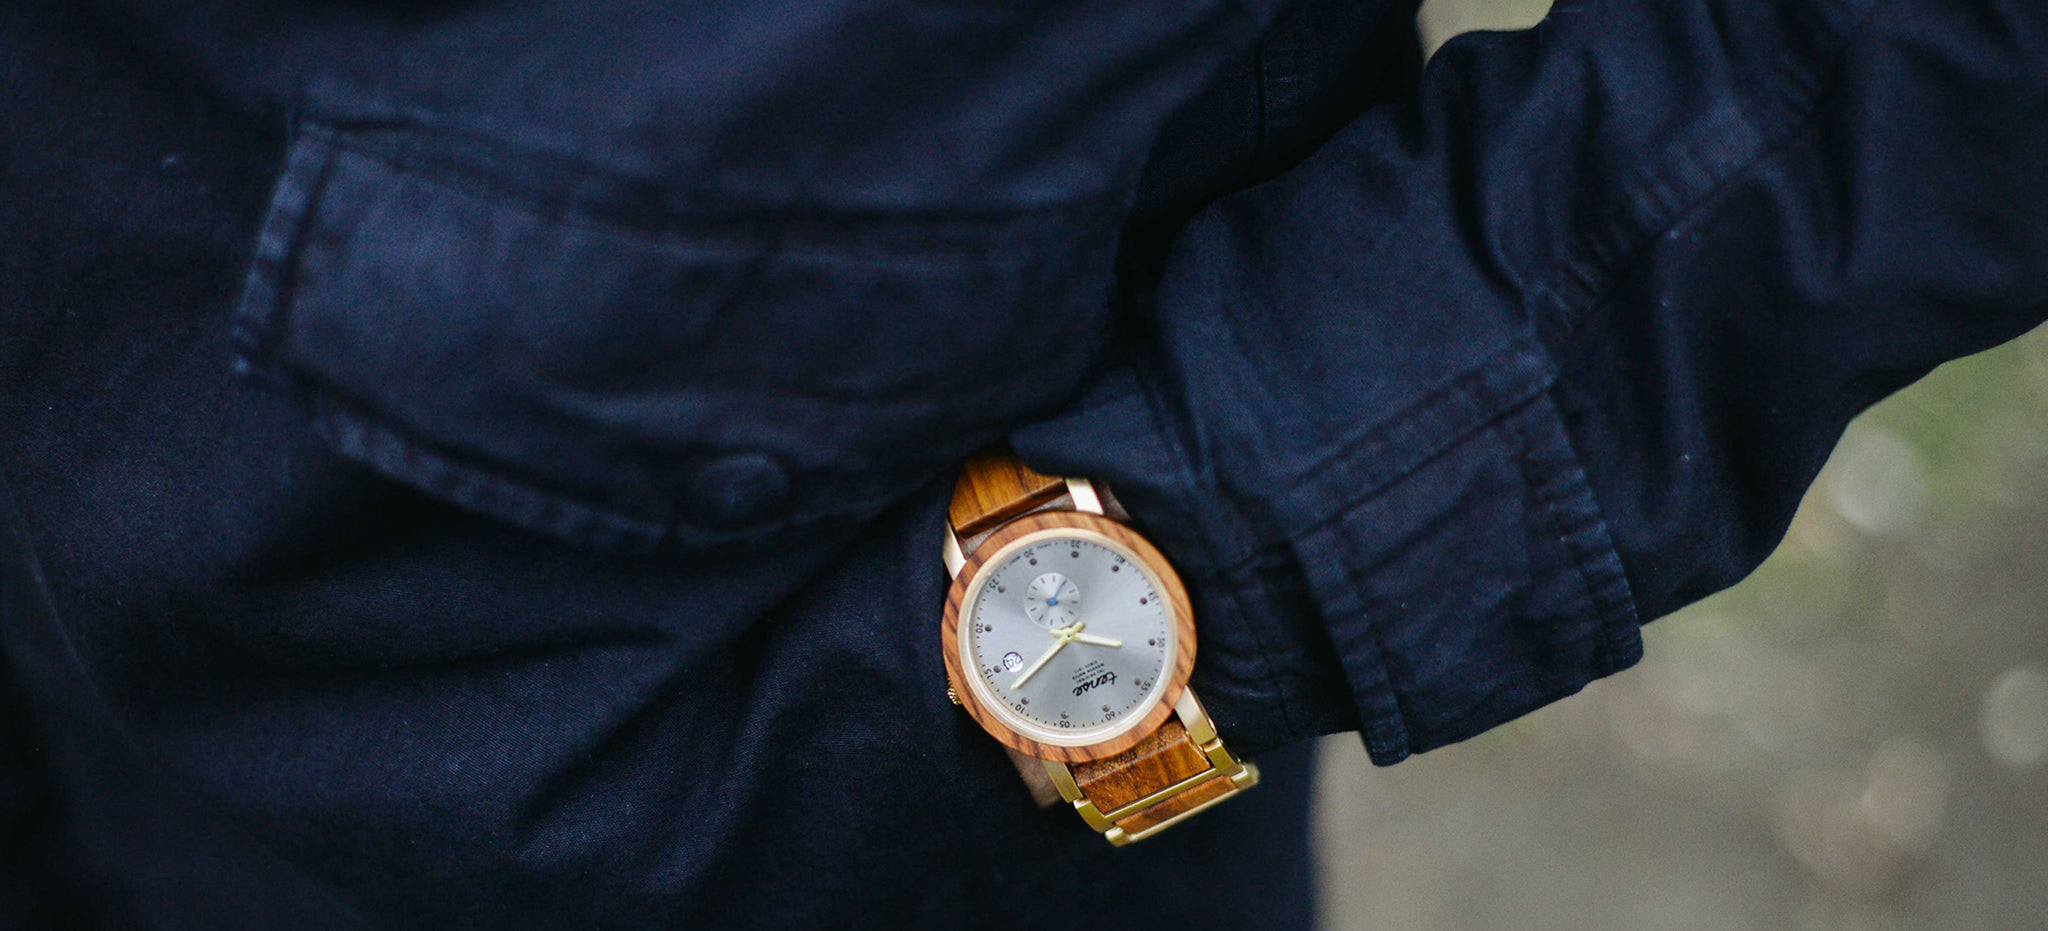 Tense Hudson Wood Watch in Teak Wood and Gold Stainless Steel